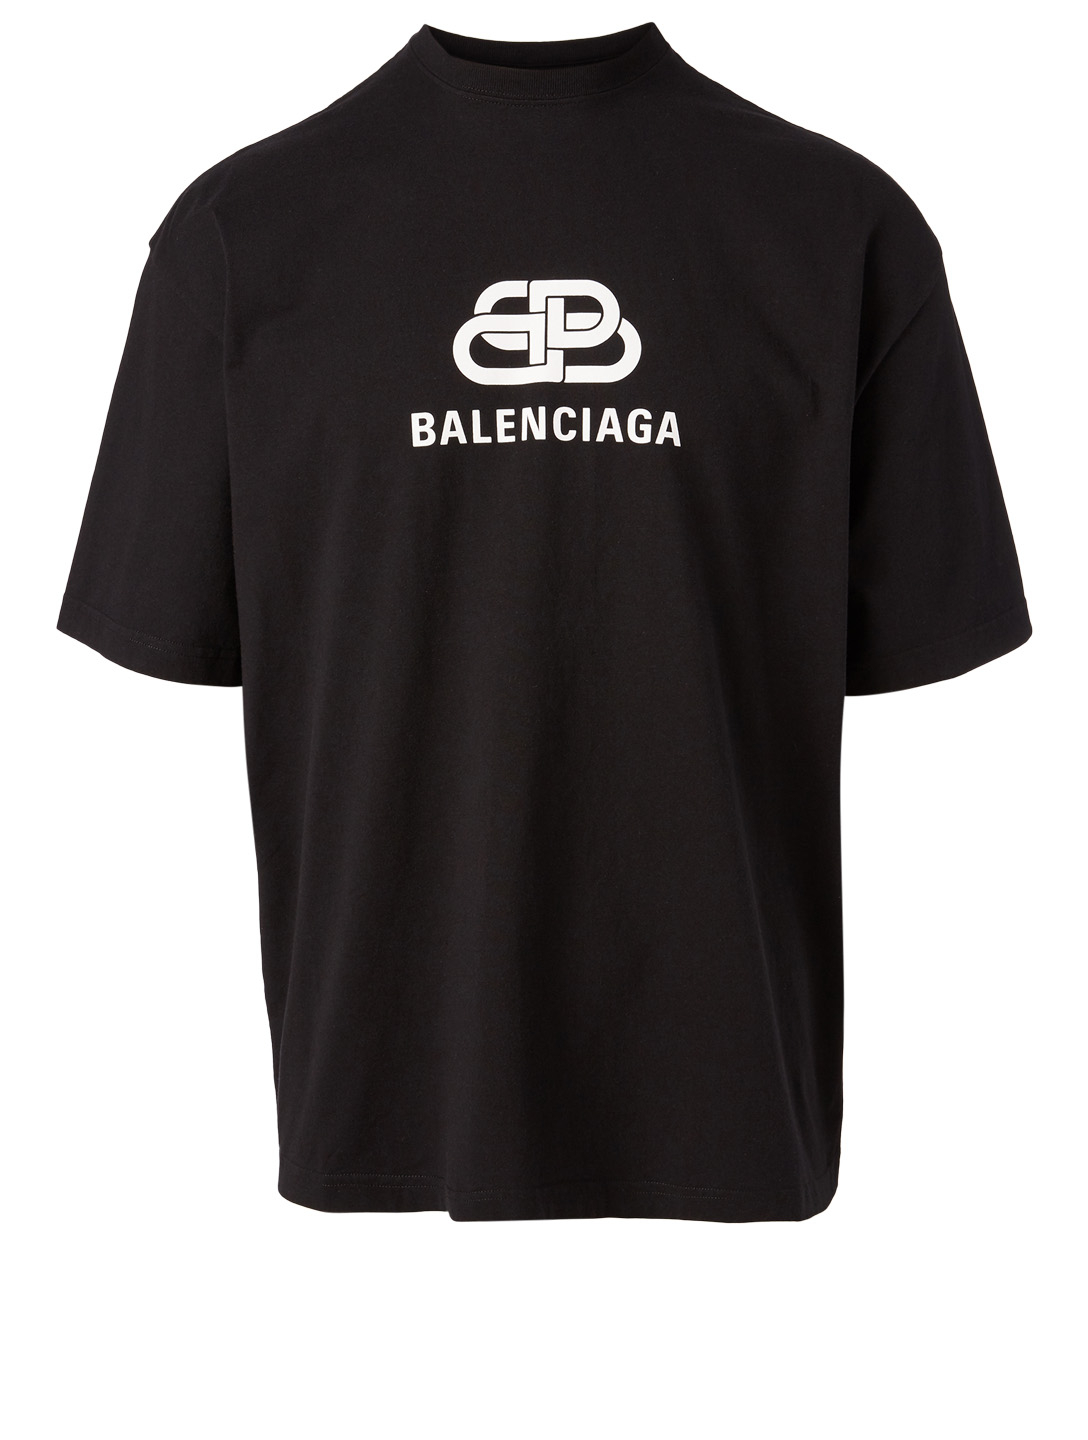 BALENCIAGA Logo T-Shirt Men's Black